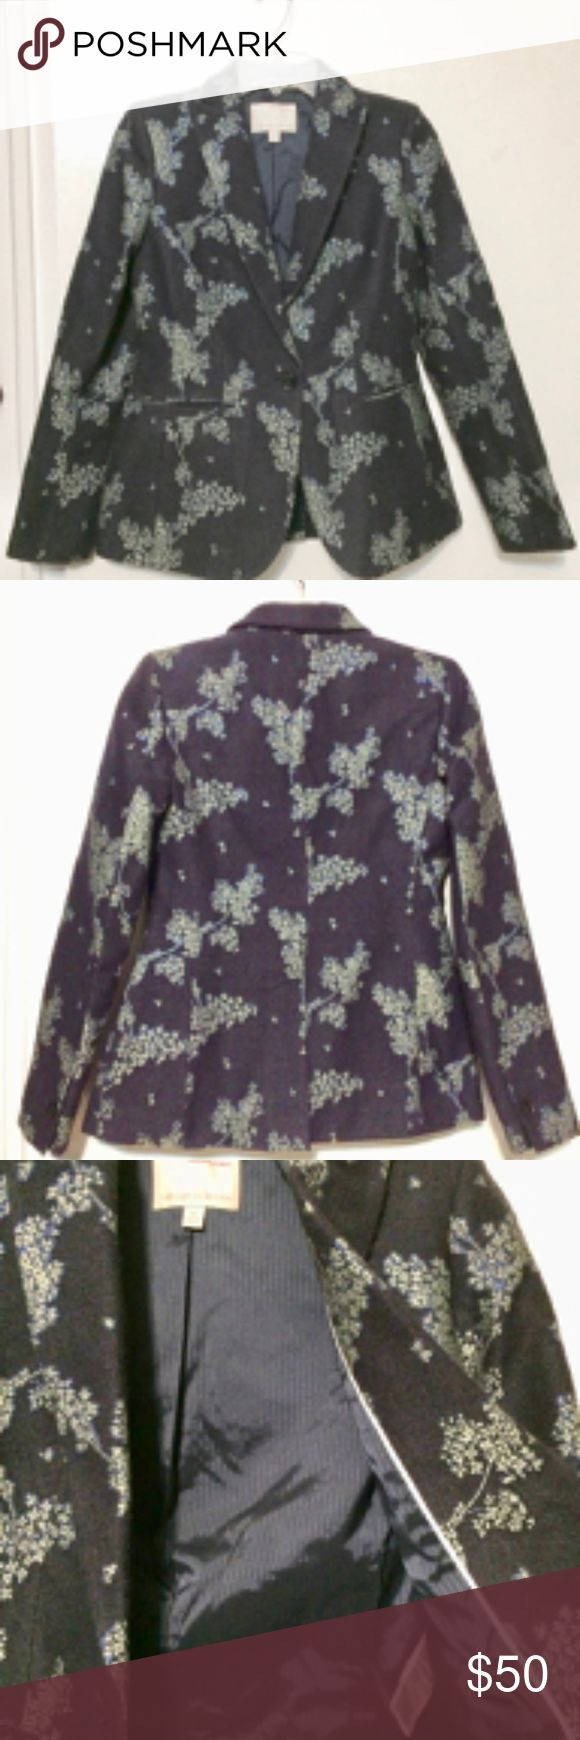 Banana Republic Heritage Collection blazer Beautiful nearly new wool blend blazer. Navy with embossed floral design and just a hint of sparkle means you can dress it up or down. Size 0. Worn once. Banana Republic Jackets & Coats Blazers